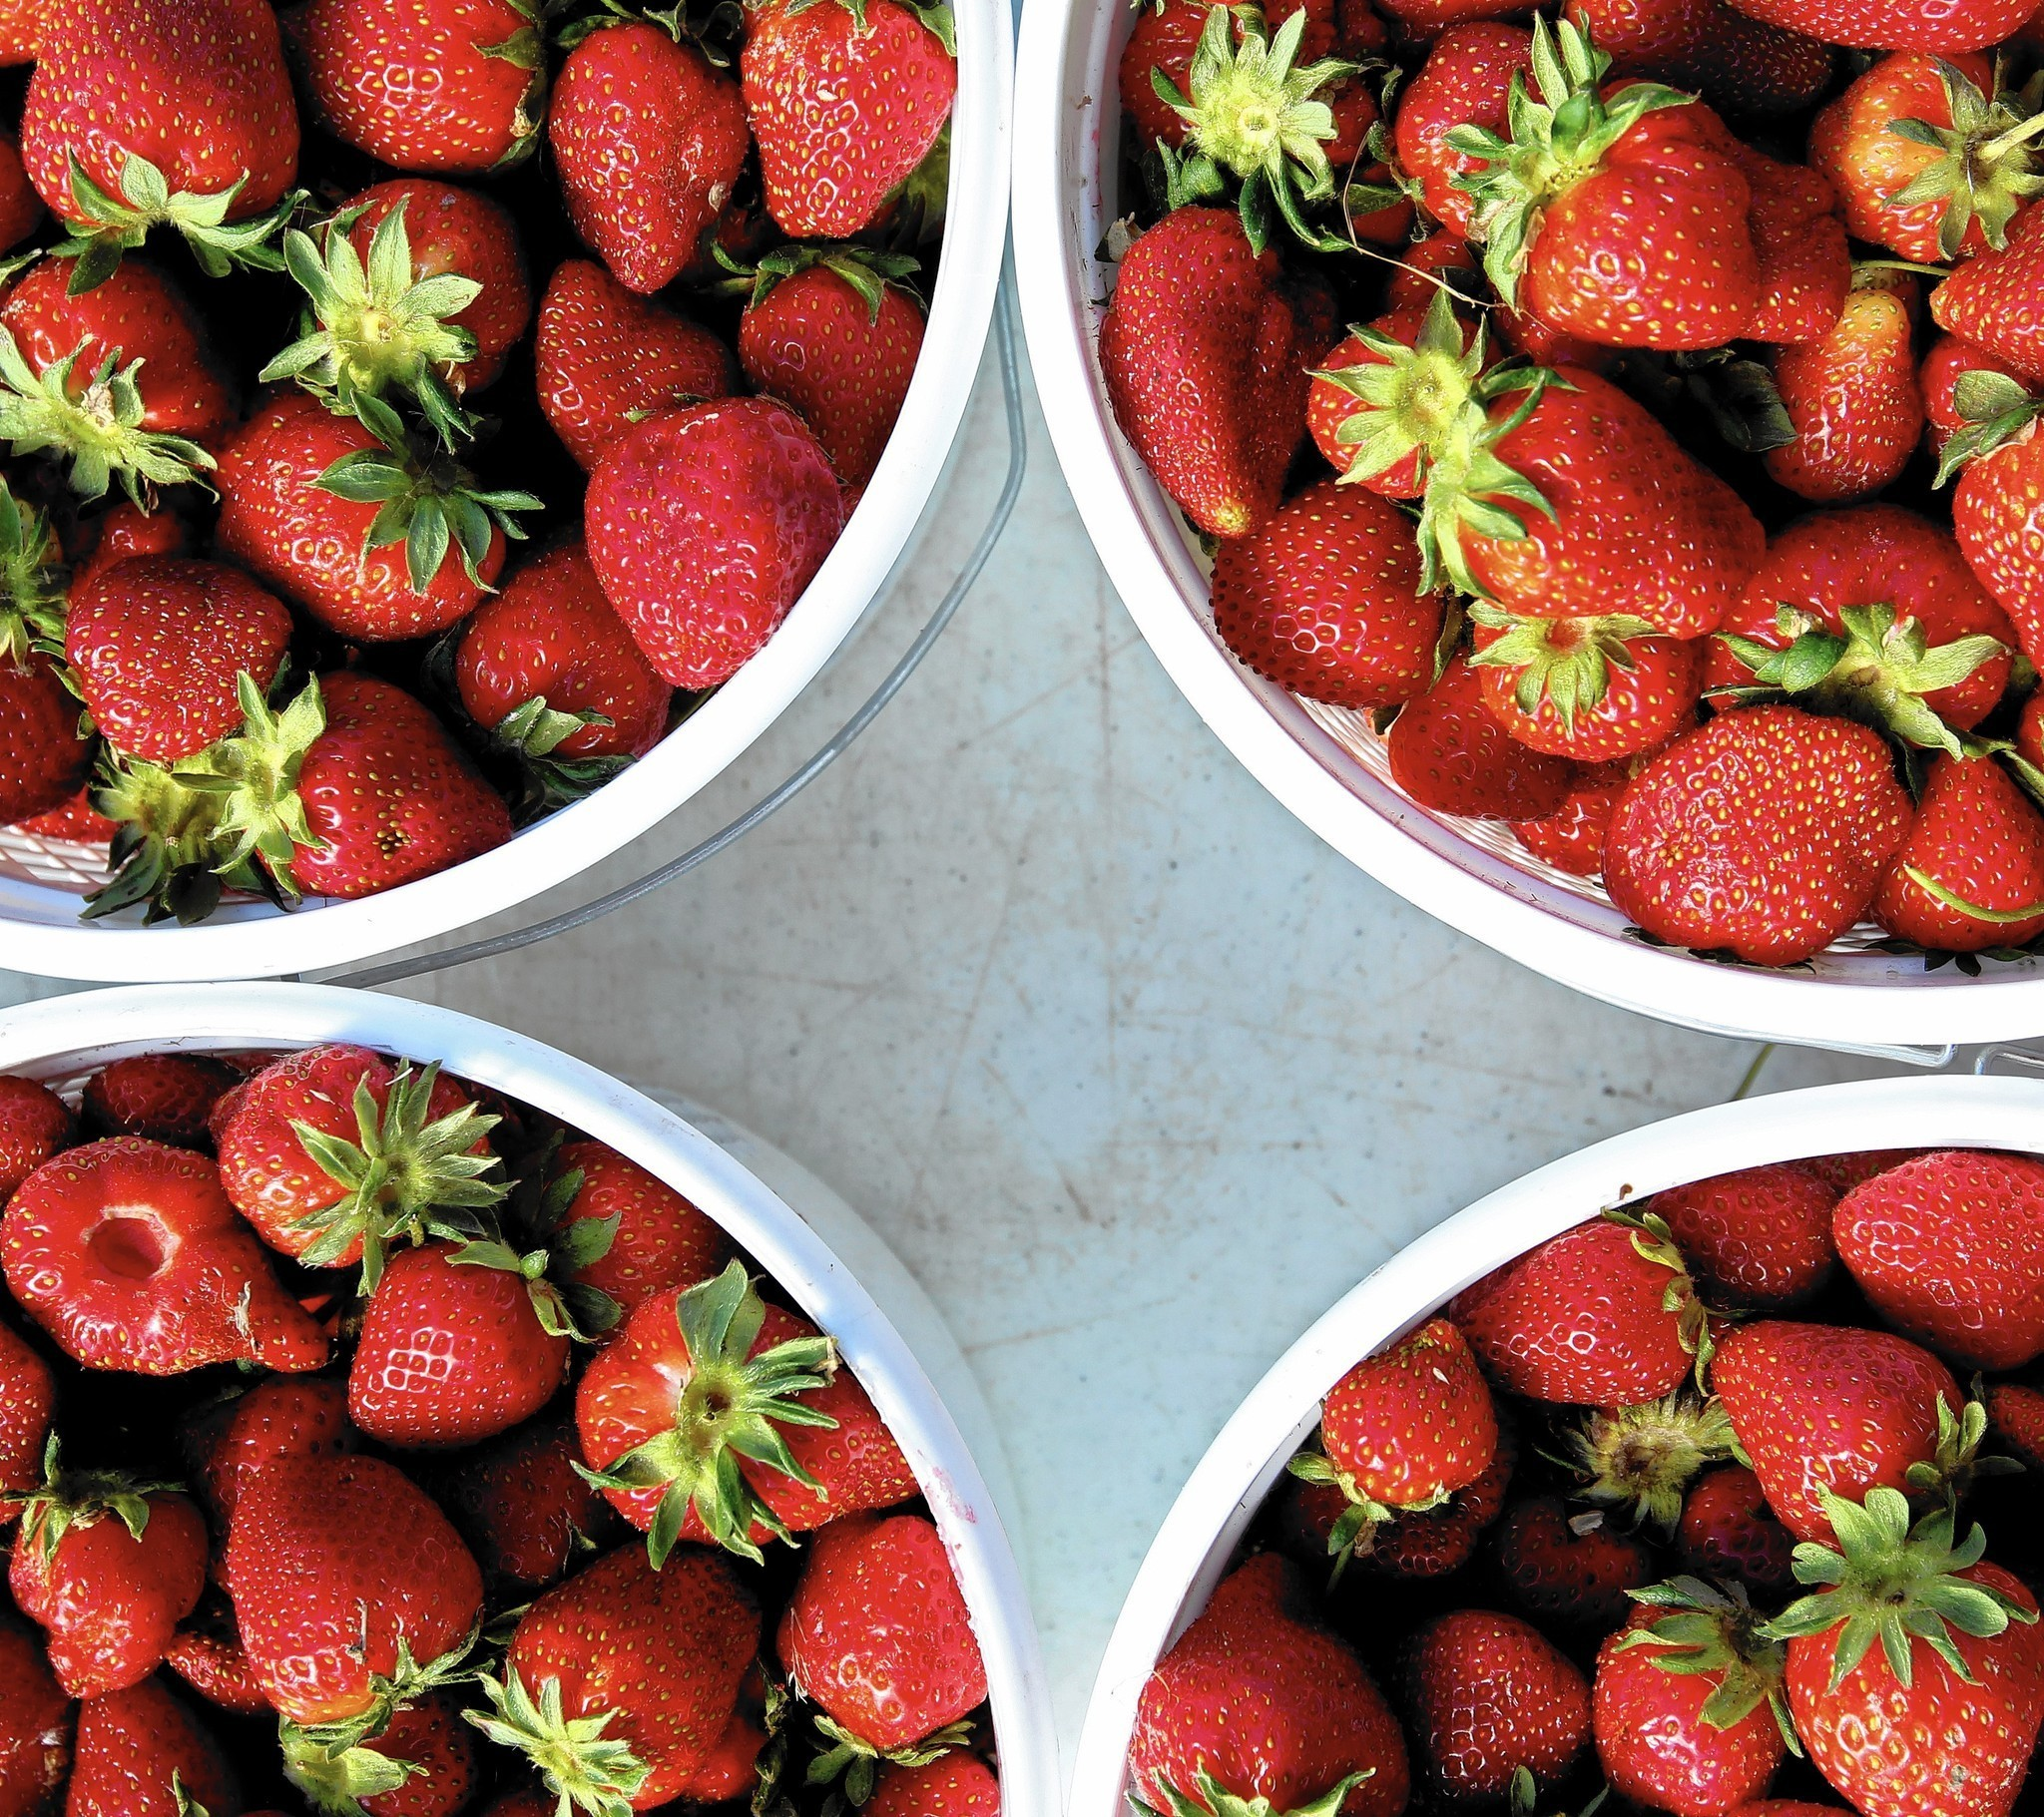 Strawberries in season: Where to find them and what to do with them